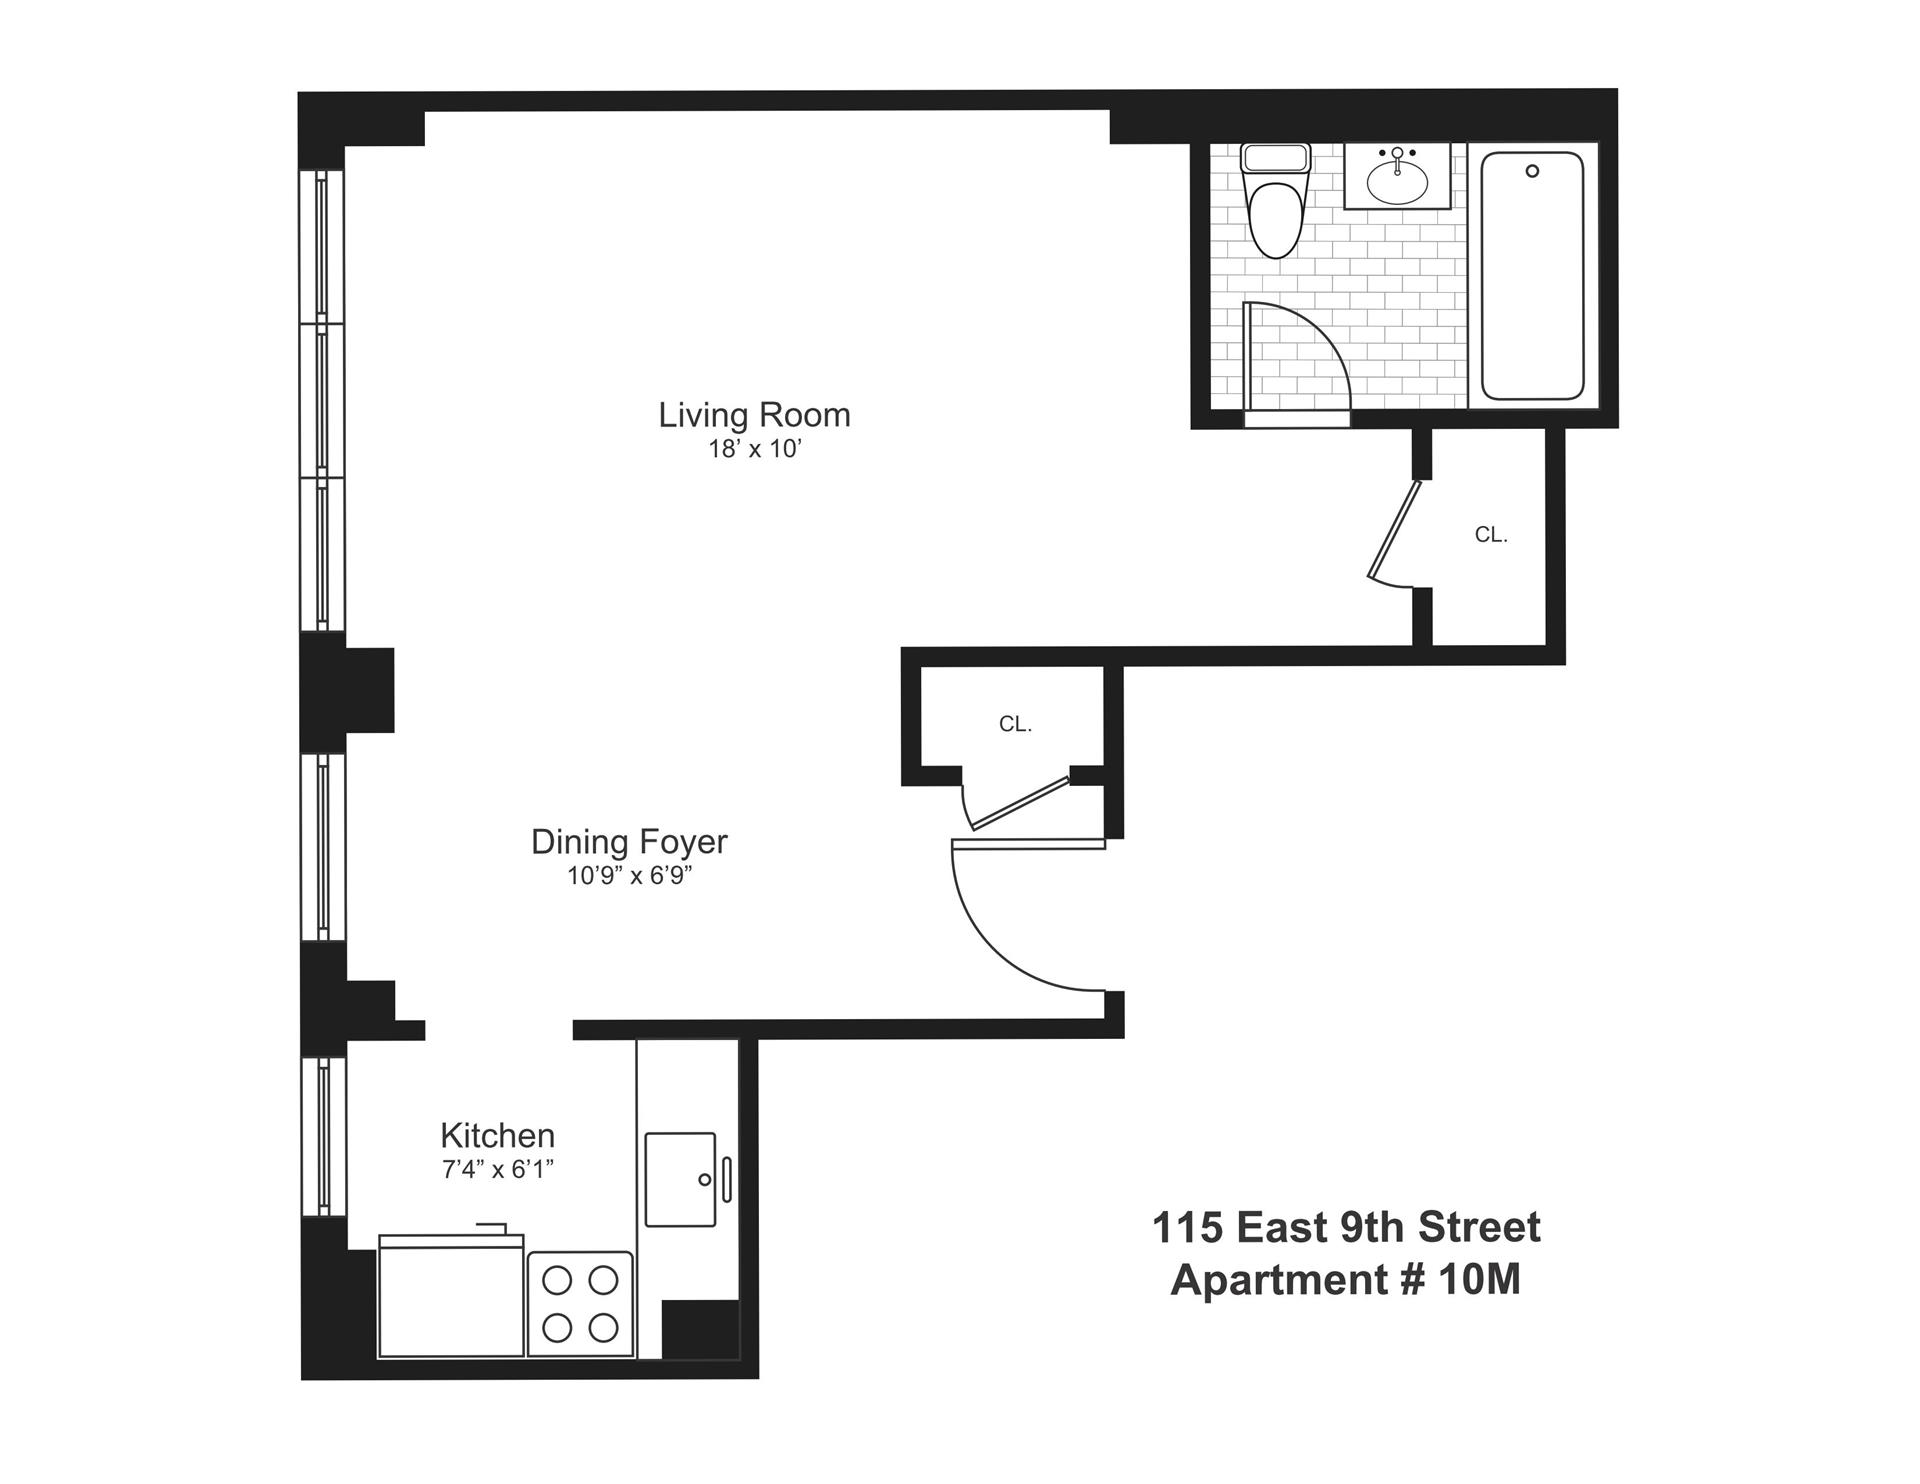 Floor plan of 115 East 9th St, 10M - Greenwich Village, New York